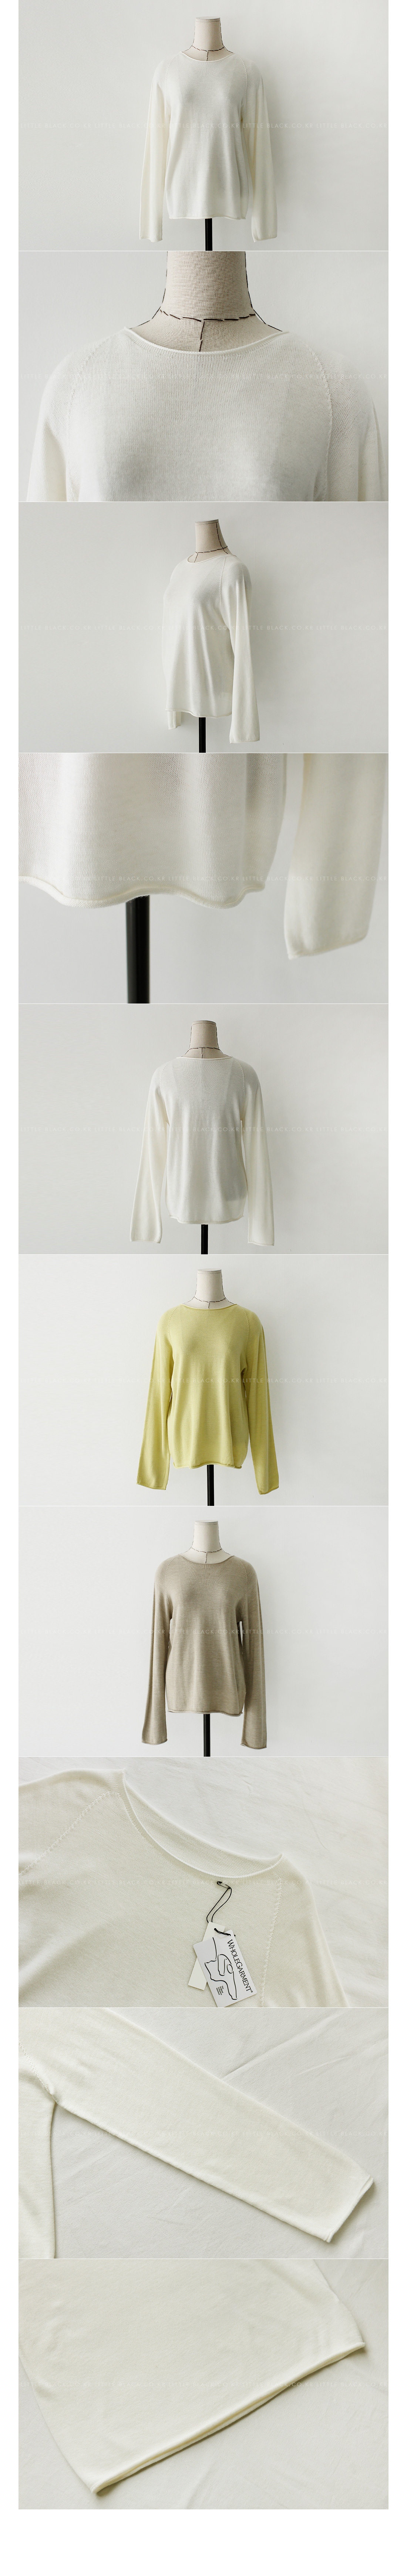 Boat Neck Relaxed Fit Knit Top|